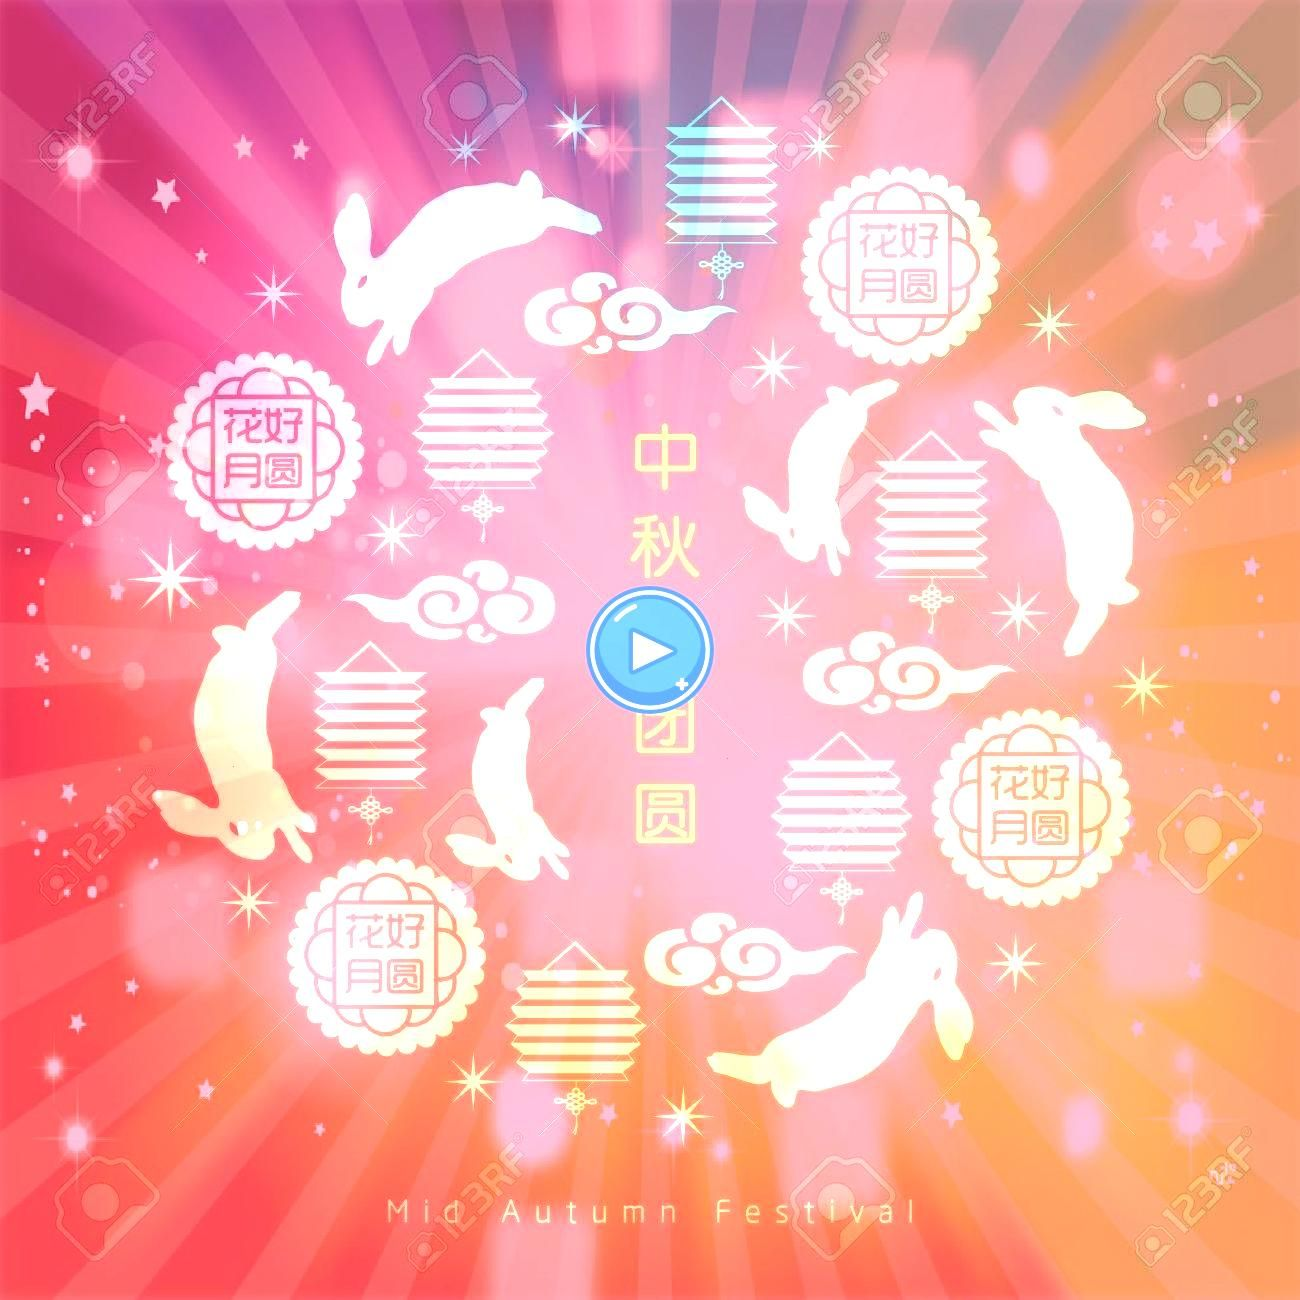 festival illustration with bunny moon cakes lantern and cloud element  Midautumn festival illustration with bunny moon cakes lantern and cloud element Midautumn festival...